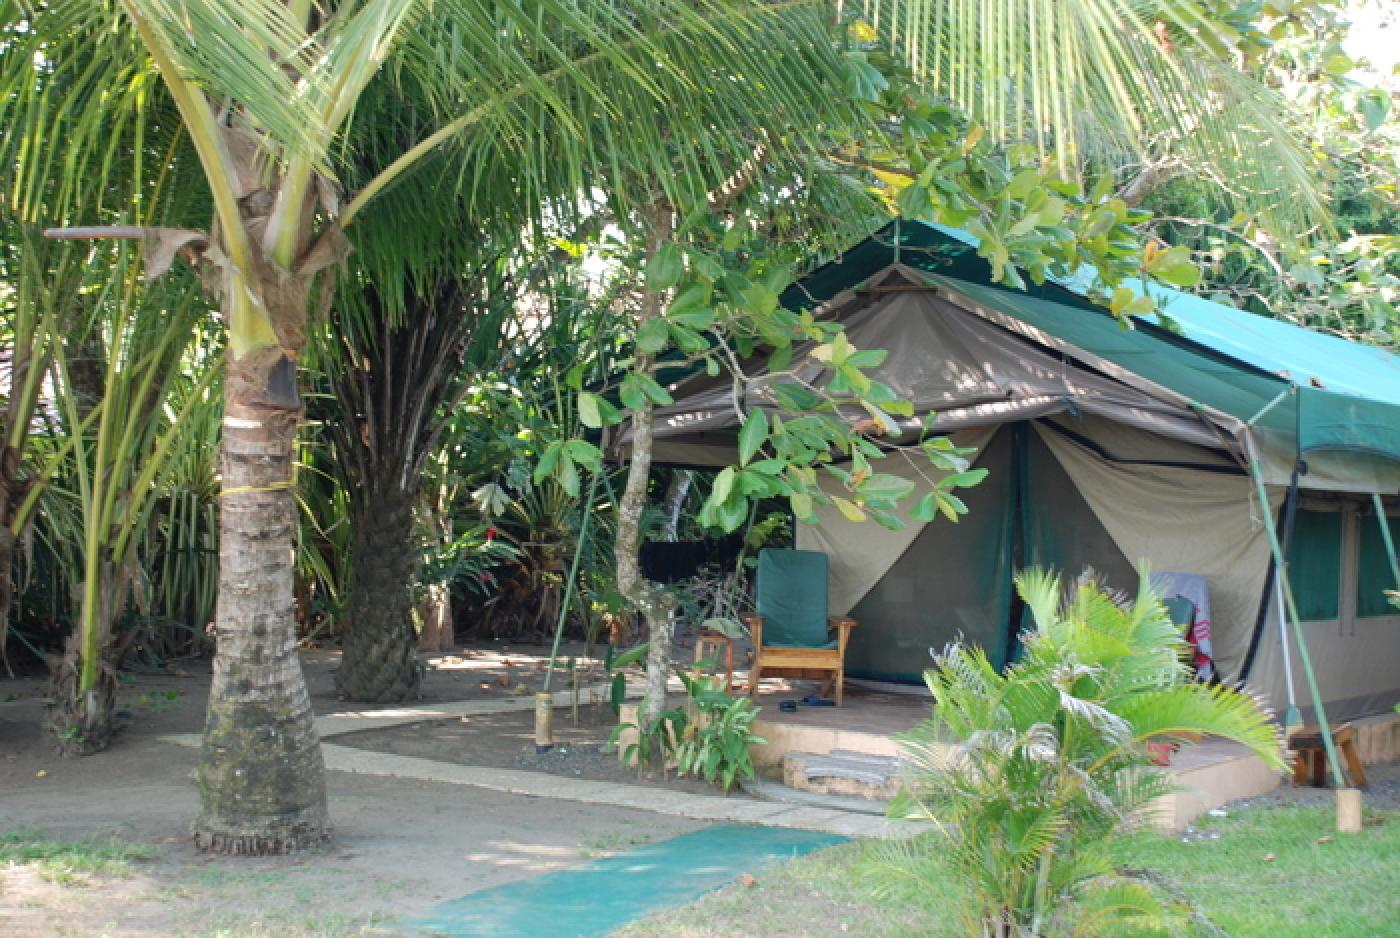 Rafiki Beach Camp